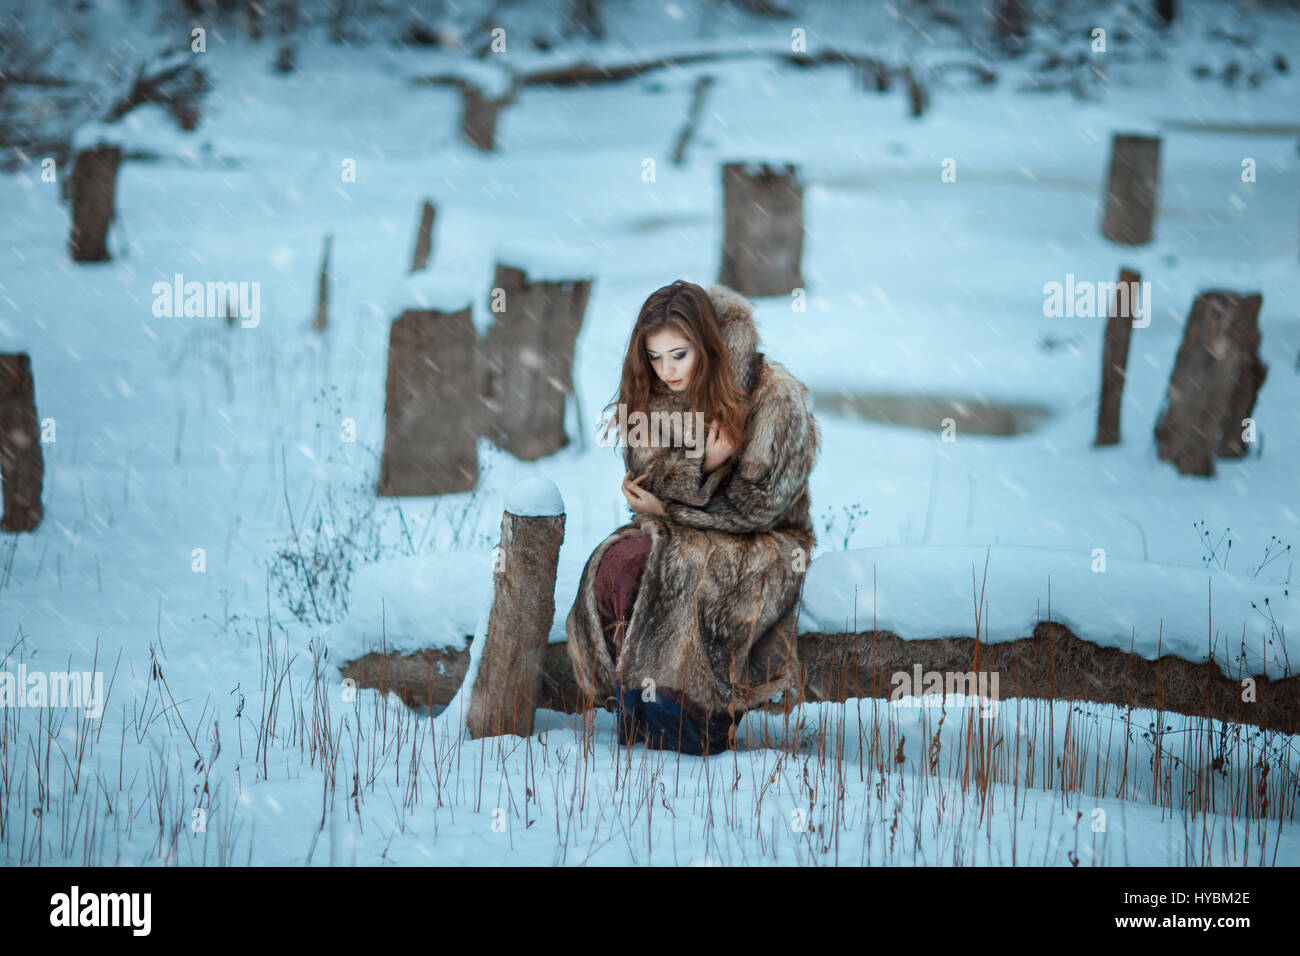 Girl froze in the winter woods. Around covered with snow and it is cold. - Stock Image